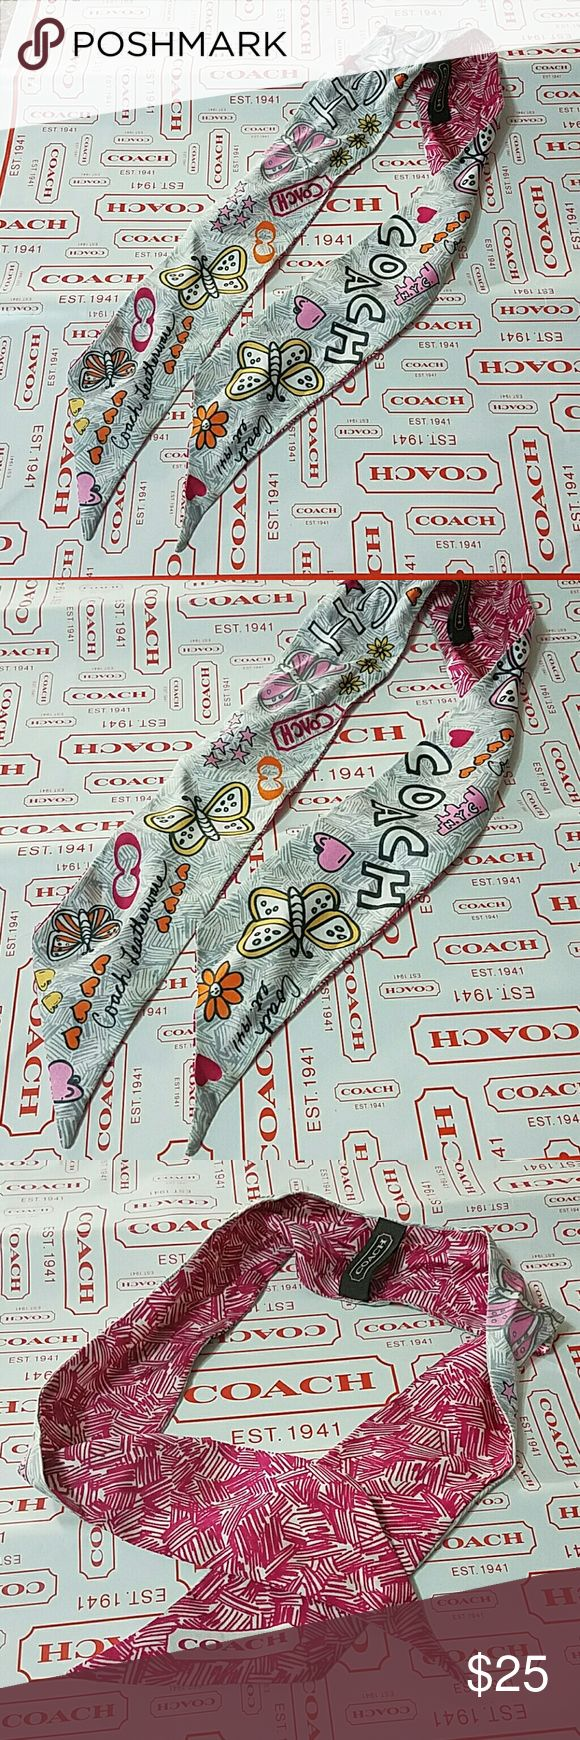 """Coach Poppy Butterfly Scarf Colors Hearts Flowers Great accessory to tie on your purse or use as a ponytail scarf for your hair! :) Coach Style # F97178 Coach Poppy Butterfly Scarf Multi Colors Condition: Pre-owned, gently used Colors: Multi Colors Butterfly & Hearts & Flowers Size: 33"""" x 2.5"""" Great for a pony tail scarf  Will ship within 24 hours. From a Smoke-Free & Pet-Free home. Thanks for looking! No trades, please Coach Accessories Key & Card Holders"""